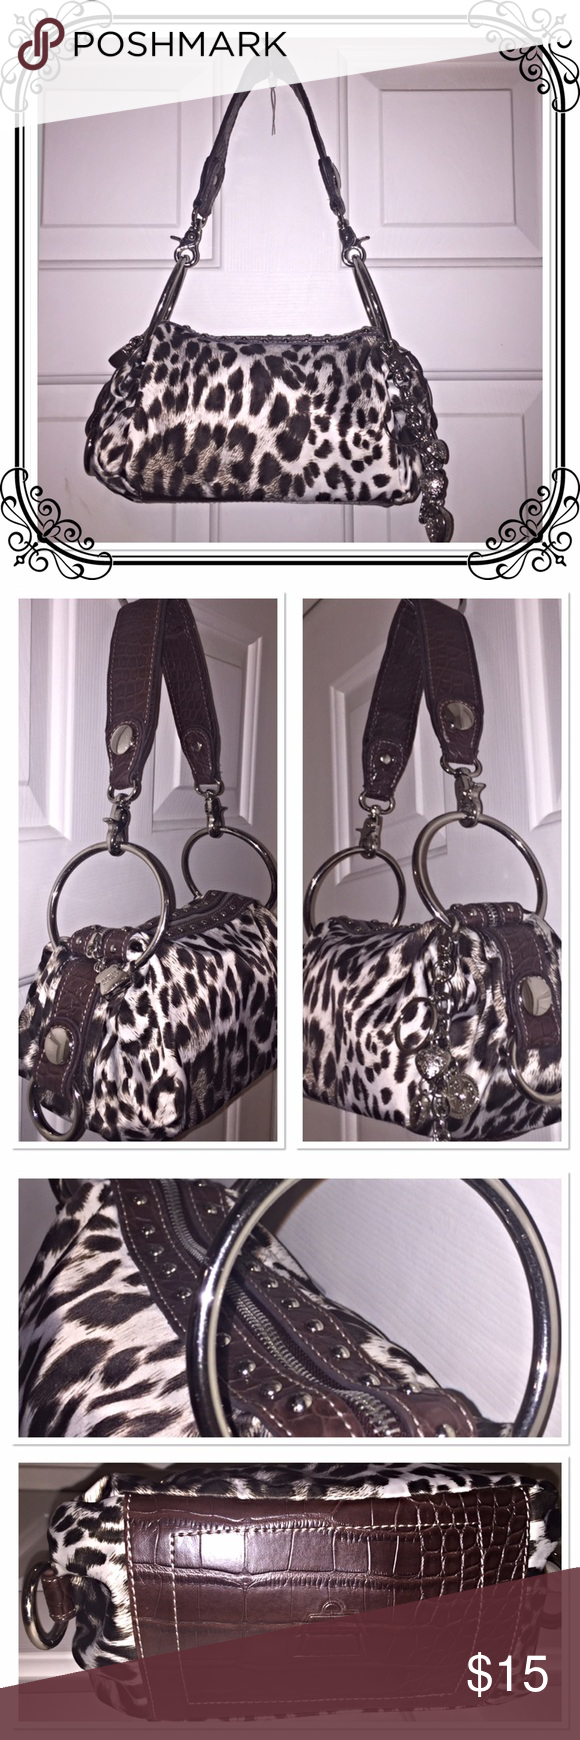 Kathy Van Zeeland Shoulder Purse Cheeta print in brown and white. Top-zip closure decorated with silver circle studs and a lock charm. O-ring detail hardware and key fob with hearts is removable.  An inner zipper pocket and two slip-in pockets.  A few pen-ink stains in one corner.  In very good conditions❣️ Kathy Van Zeeland Bags Shoulder Bags